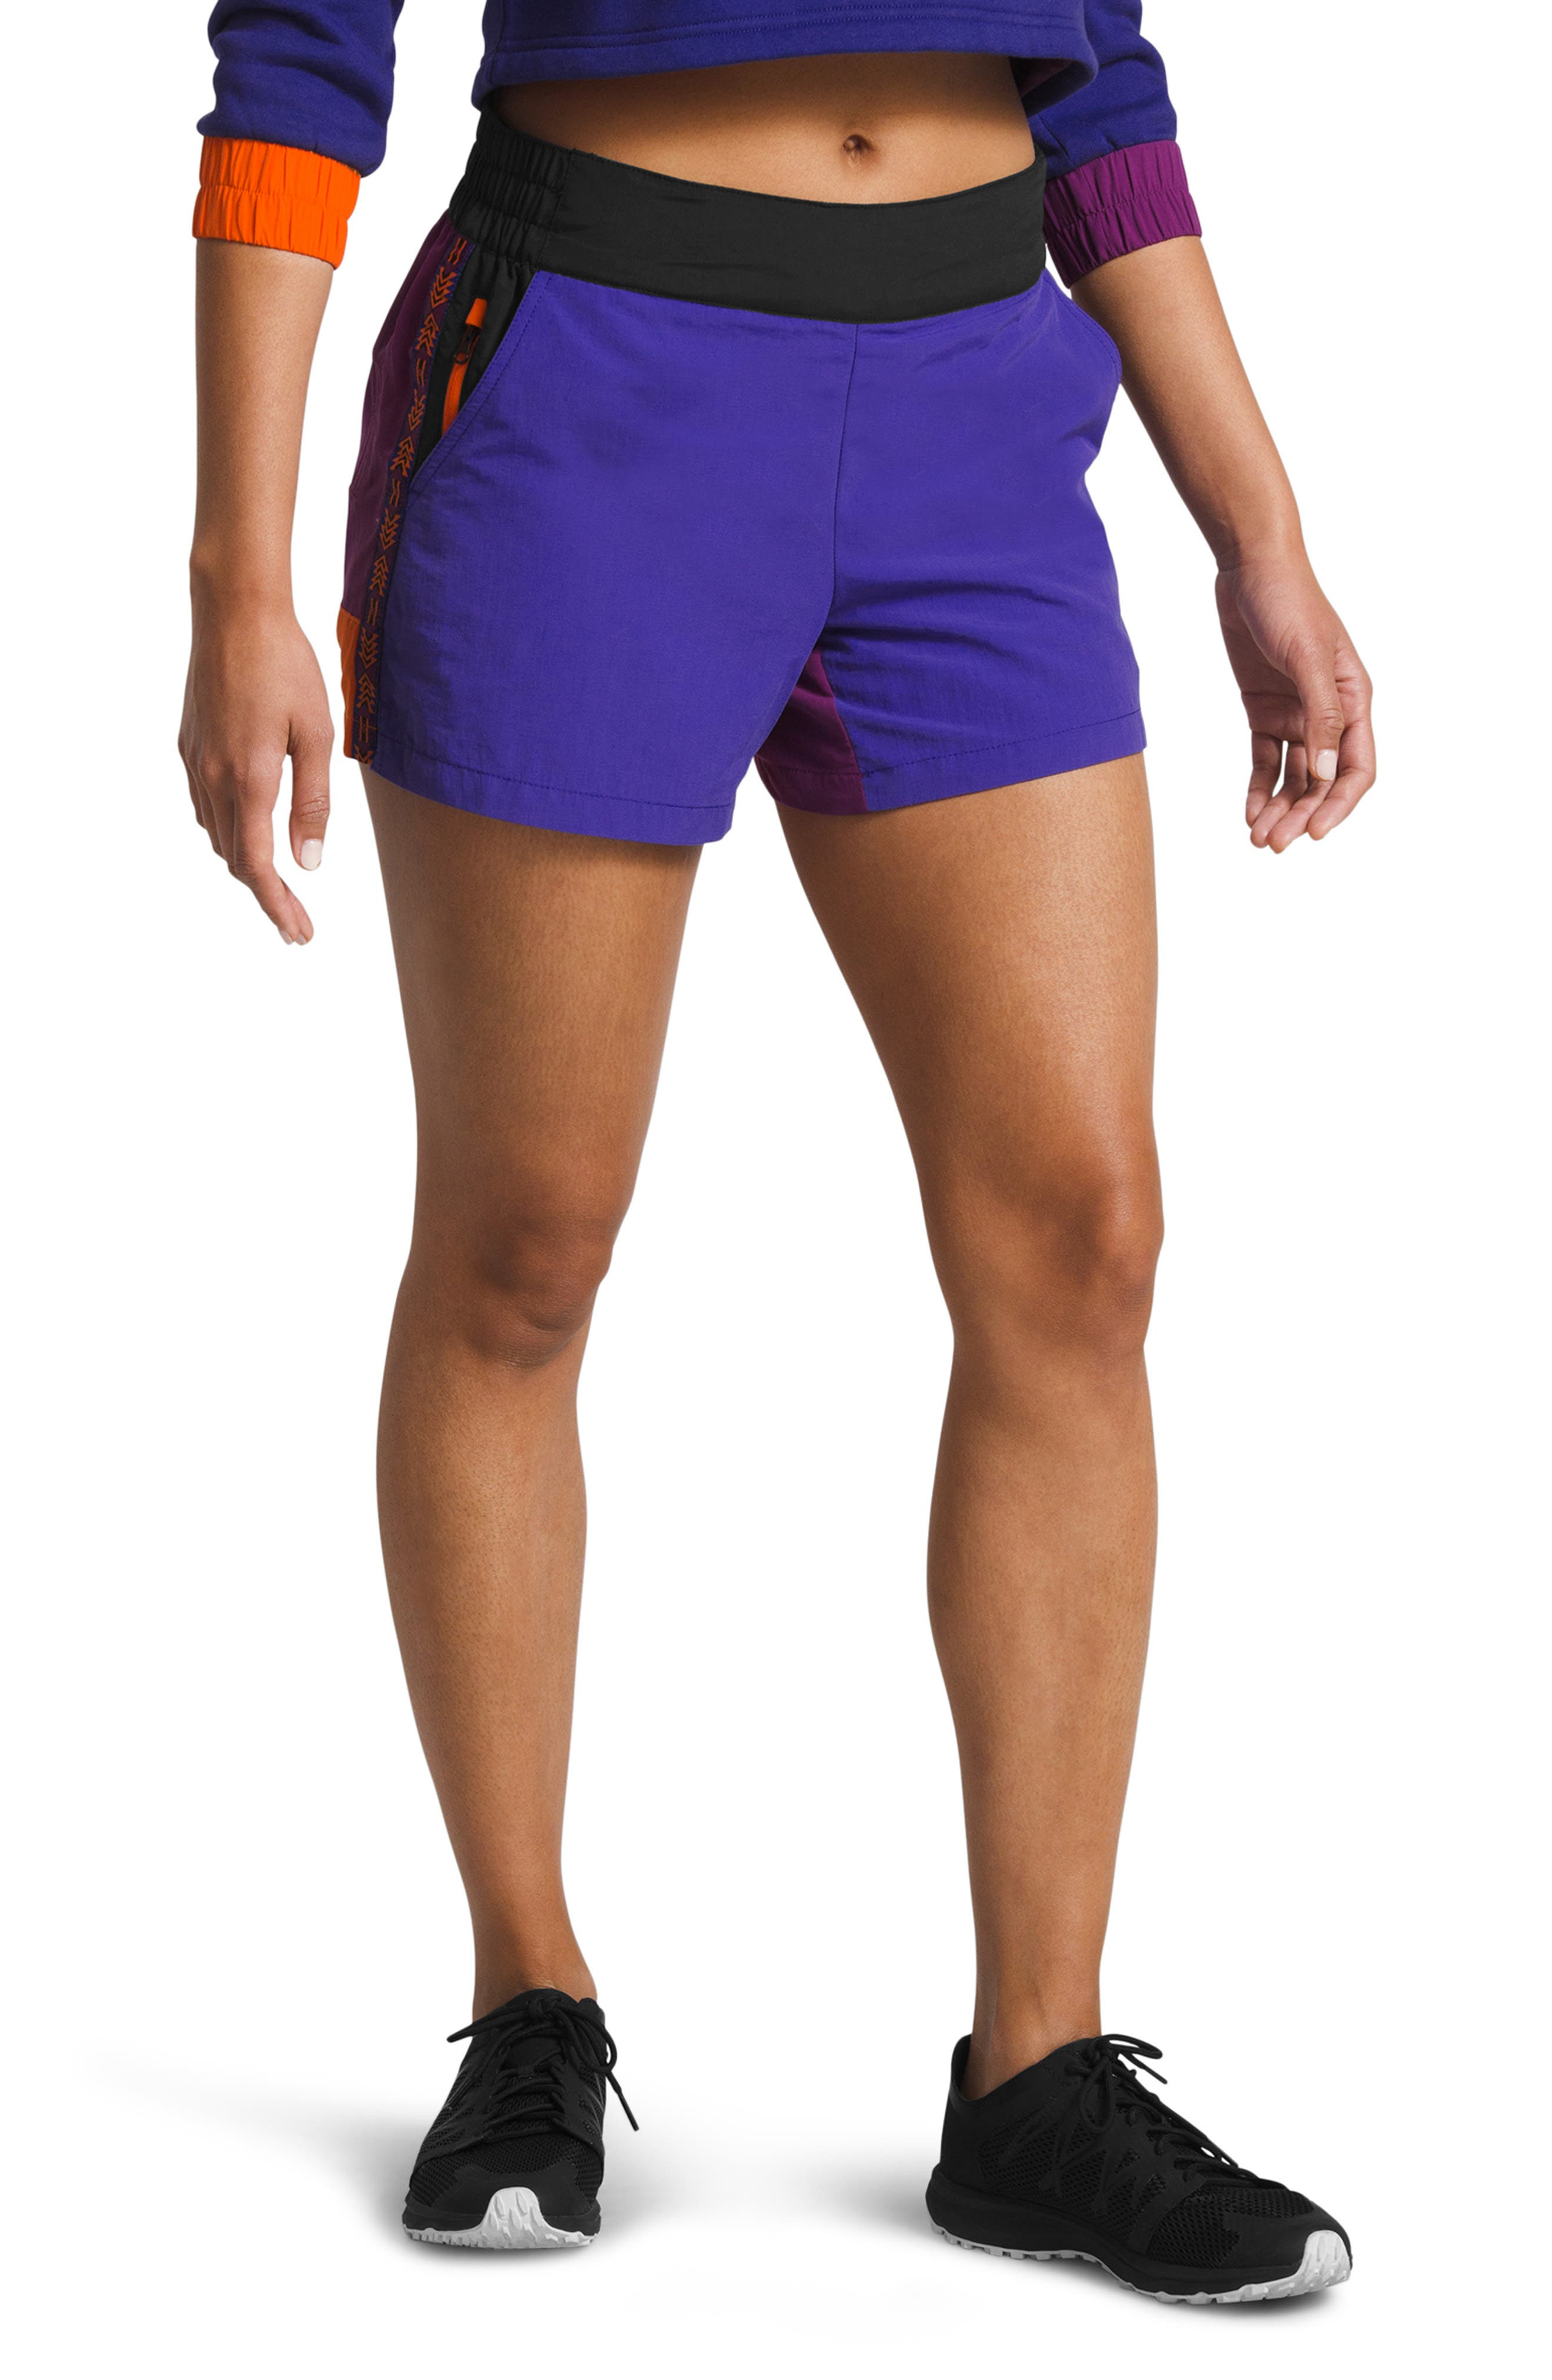 THE NORTH FACE, 92 Rage Lounger Shorts, Main thumbnail 1, color, AZTEC BLUE RAGE COMBO